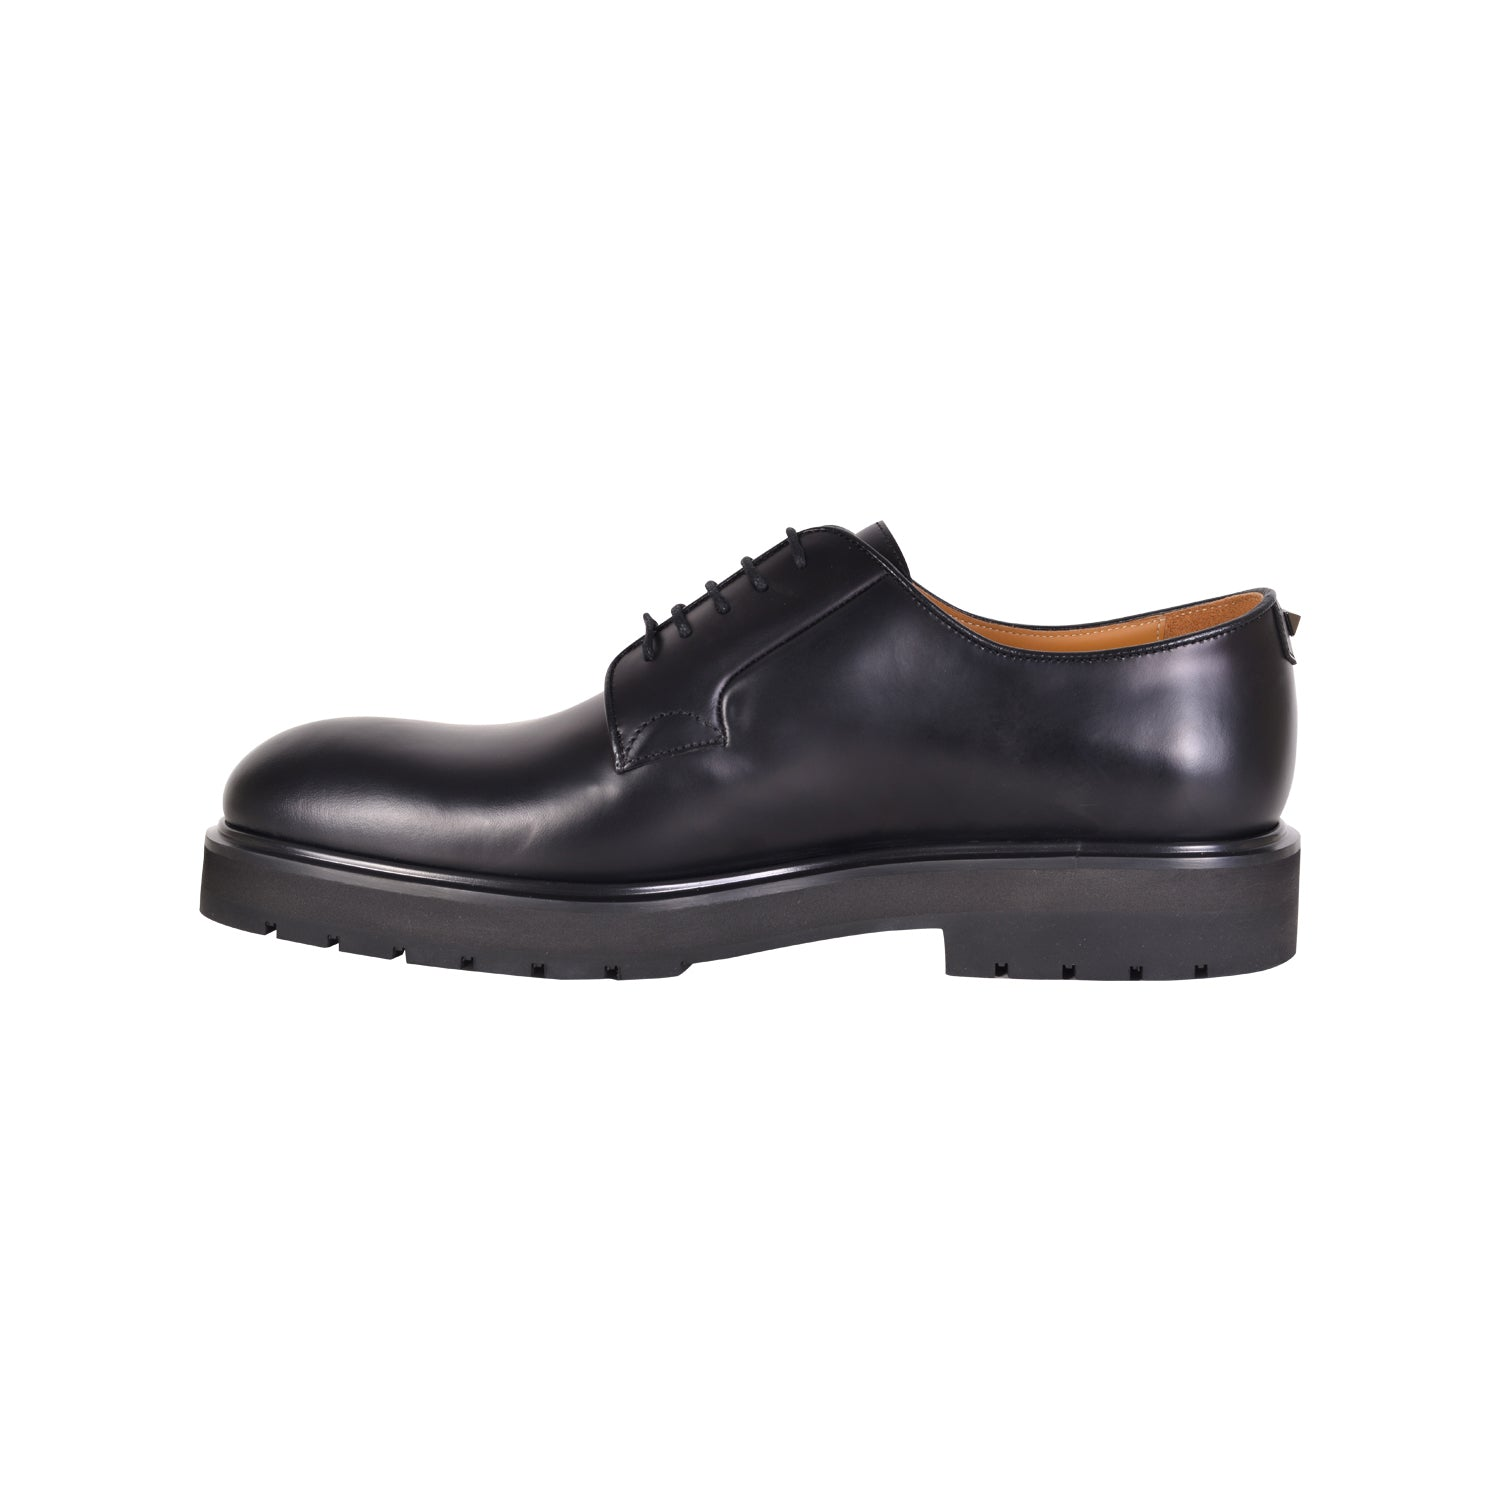 VALENTINO Black Derby Shoes with Applied Stud